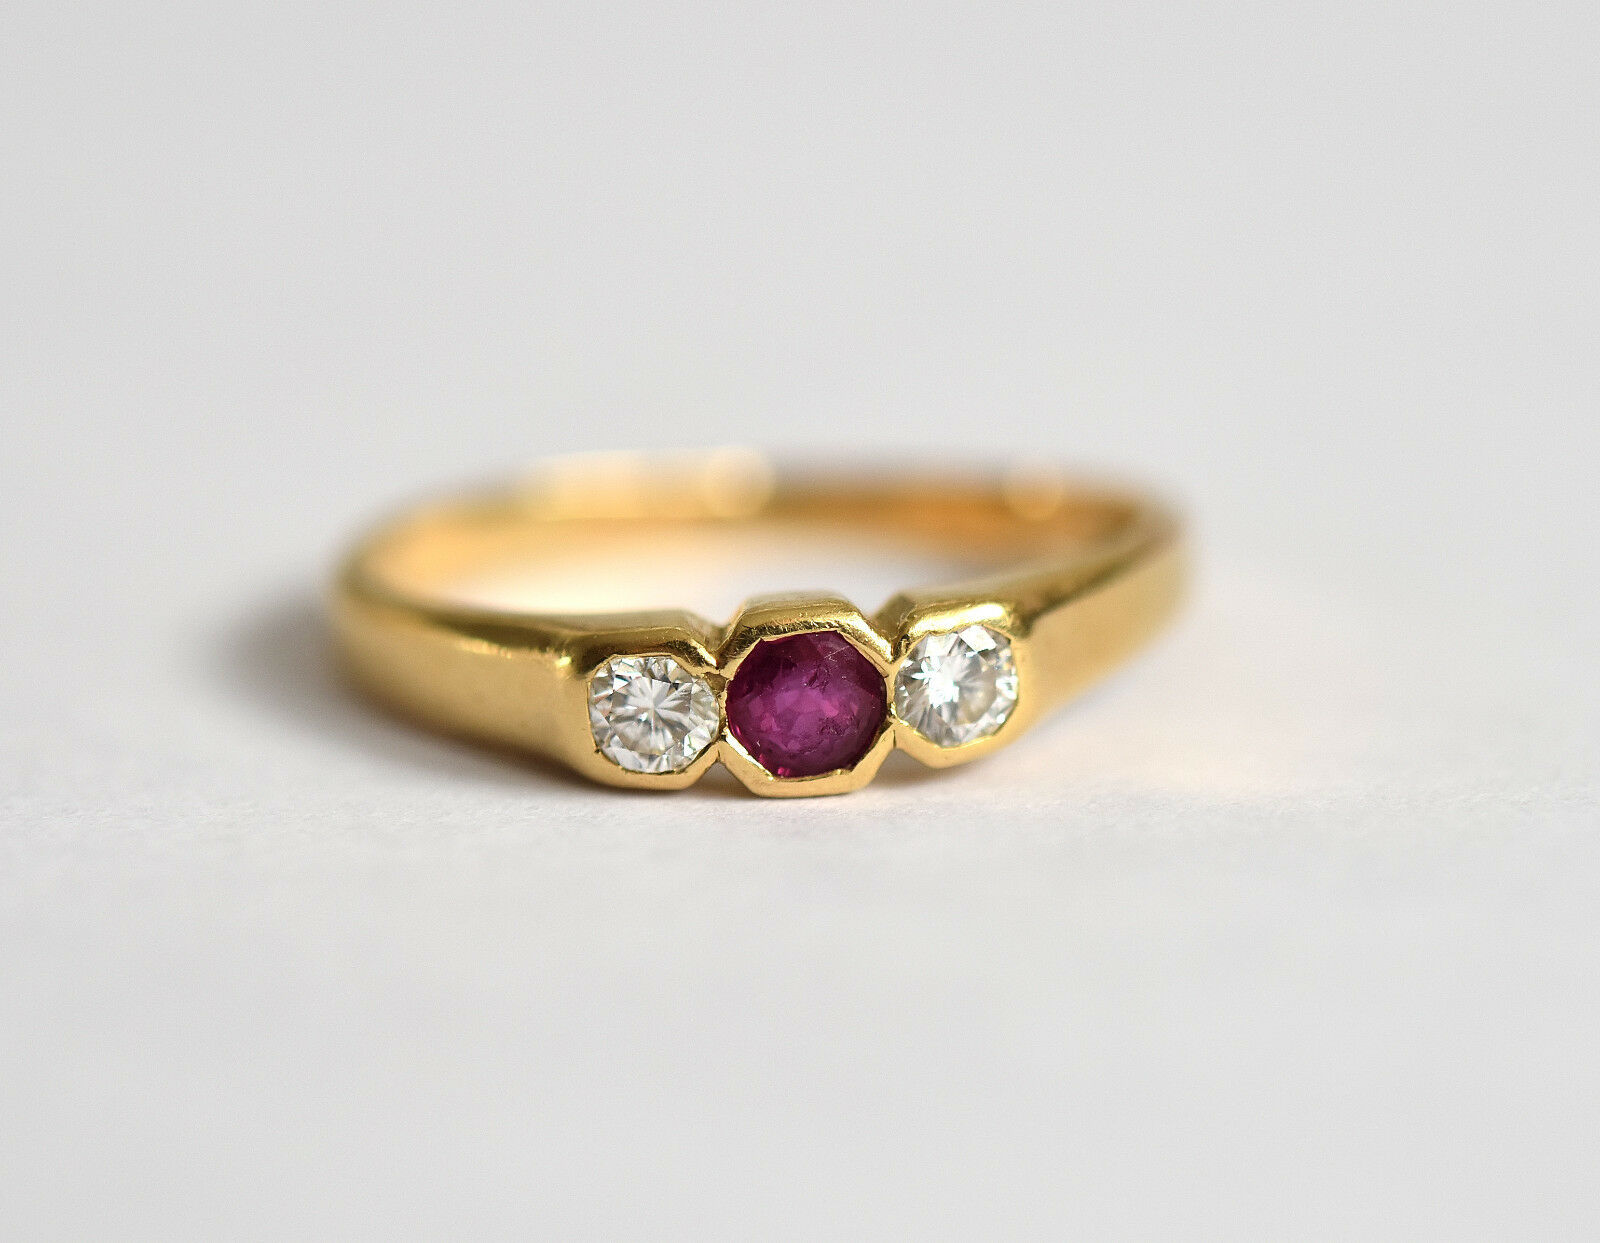 18ct gold 0.24carat diamond & 0.22carat ruby engagement ring  excellent quality